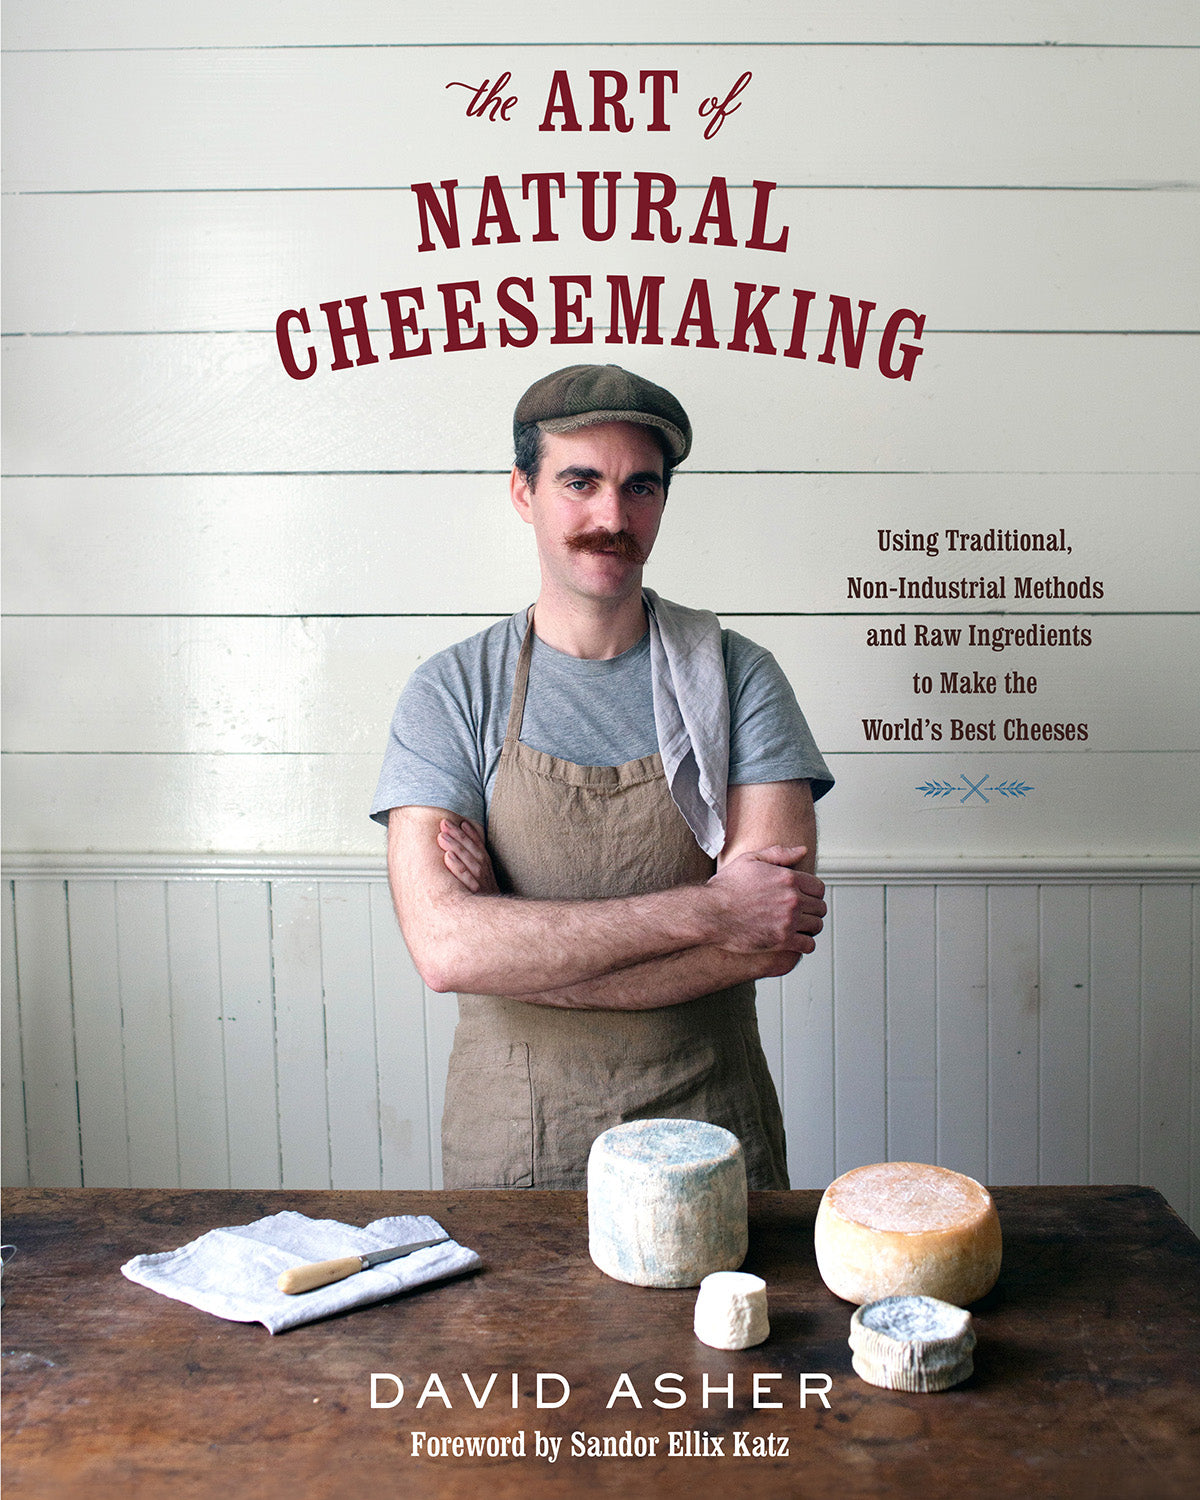 2-DAY NATURAL CHEESEMAKING CLASS WITH DAVID ASHER